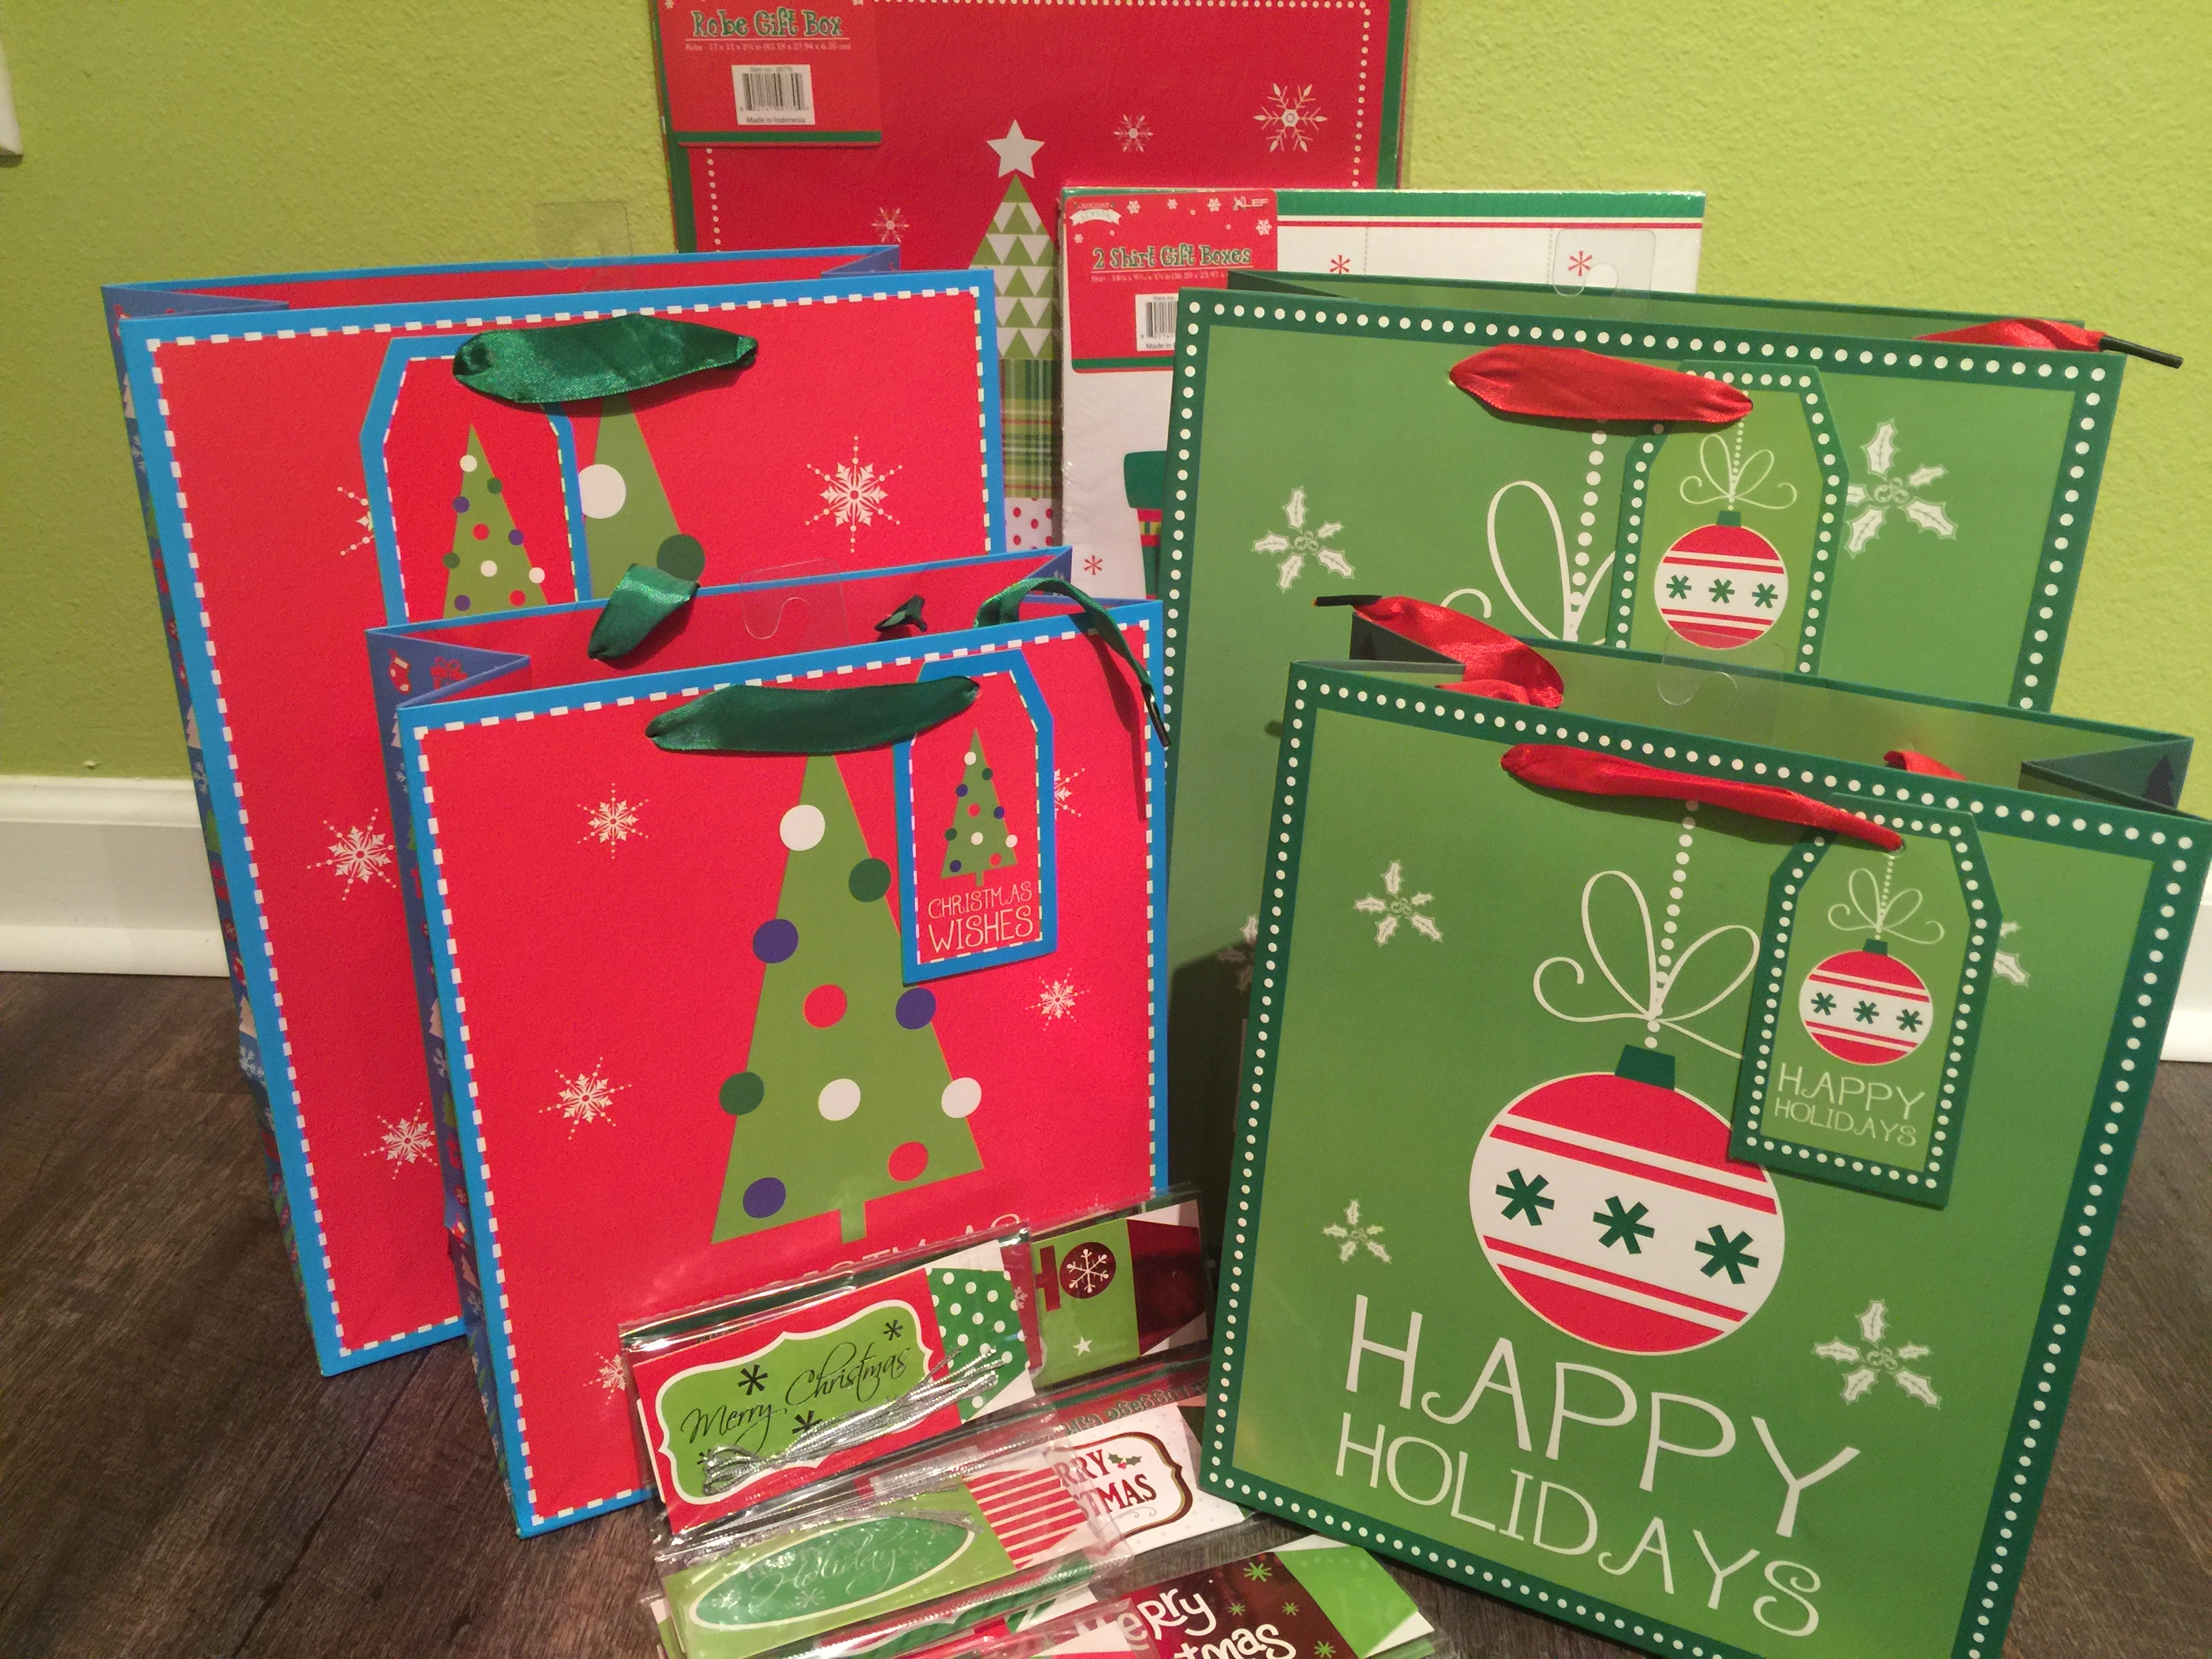 christmas gift wrap sets from zippkids amazon store review - Amazon Christmas Gift